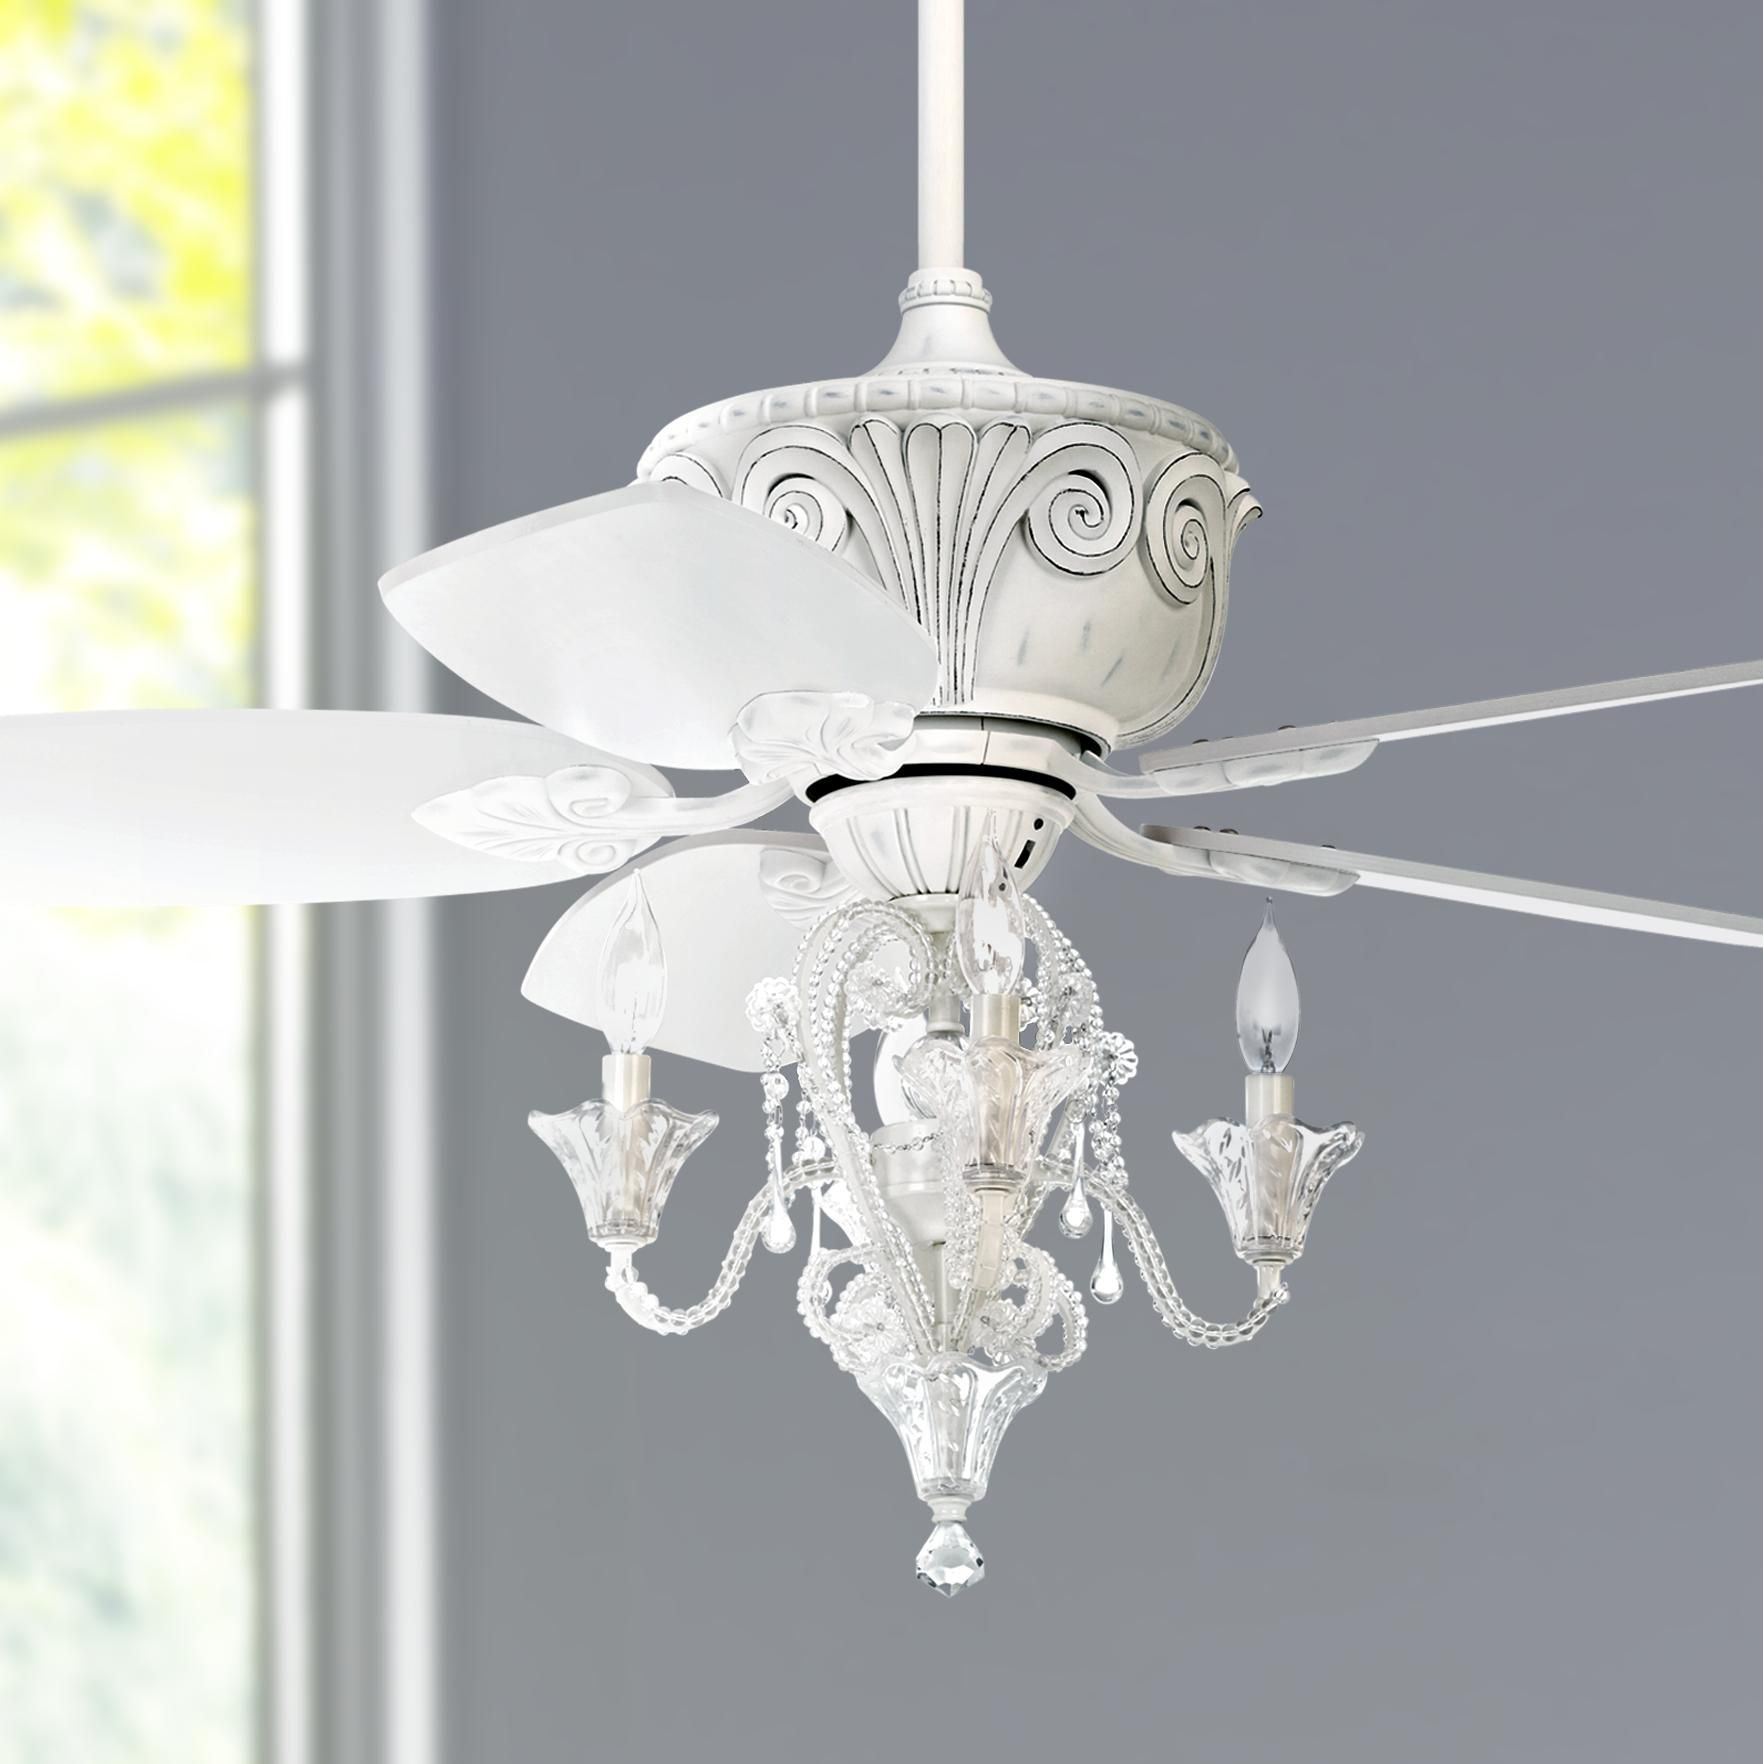 White Flower Ceiling Fan White Farmhouse Ceiling Fan Bindu Bhatia Astrology